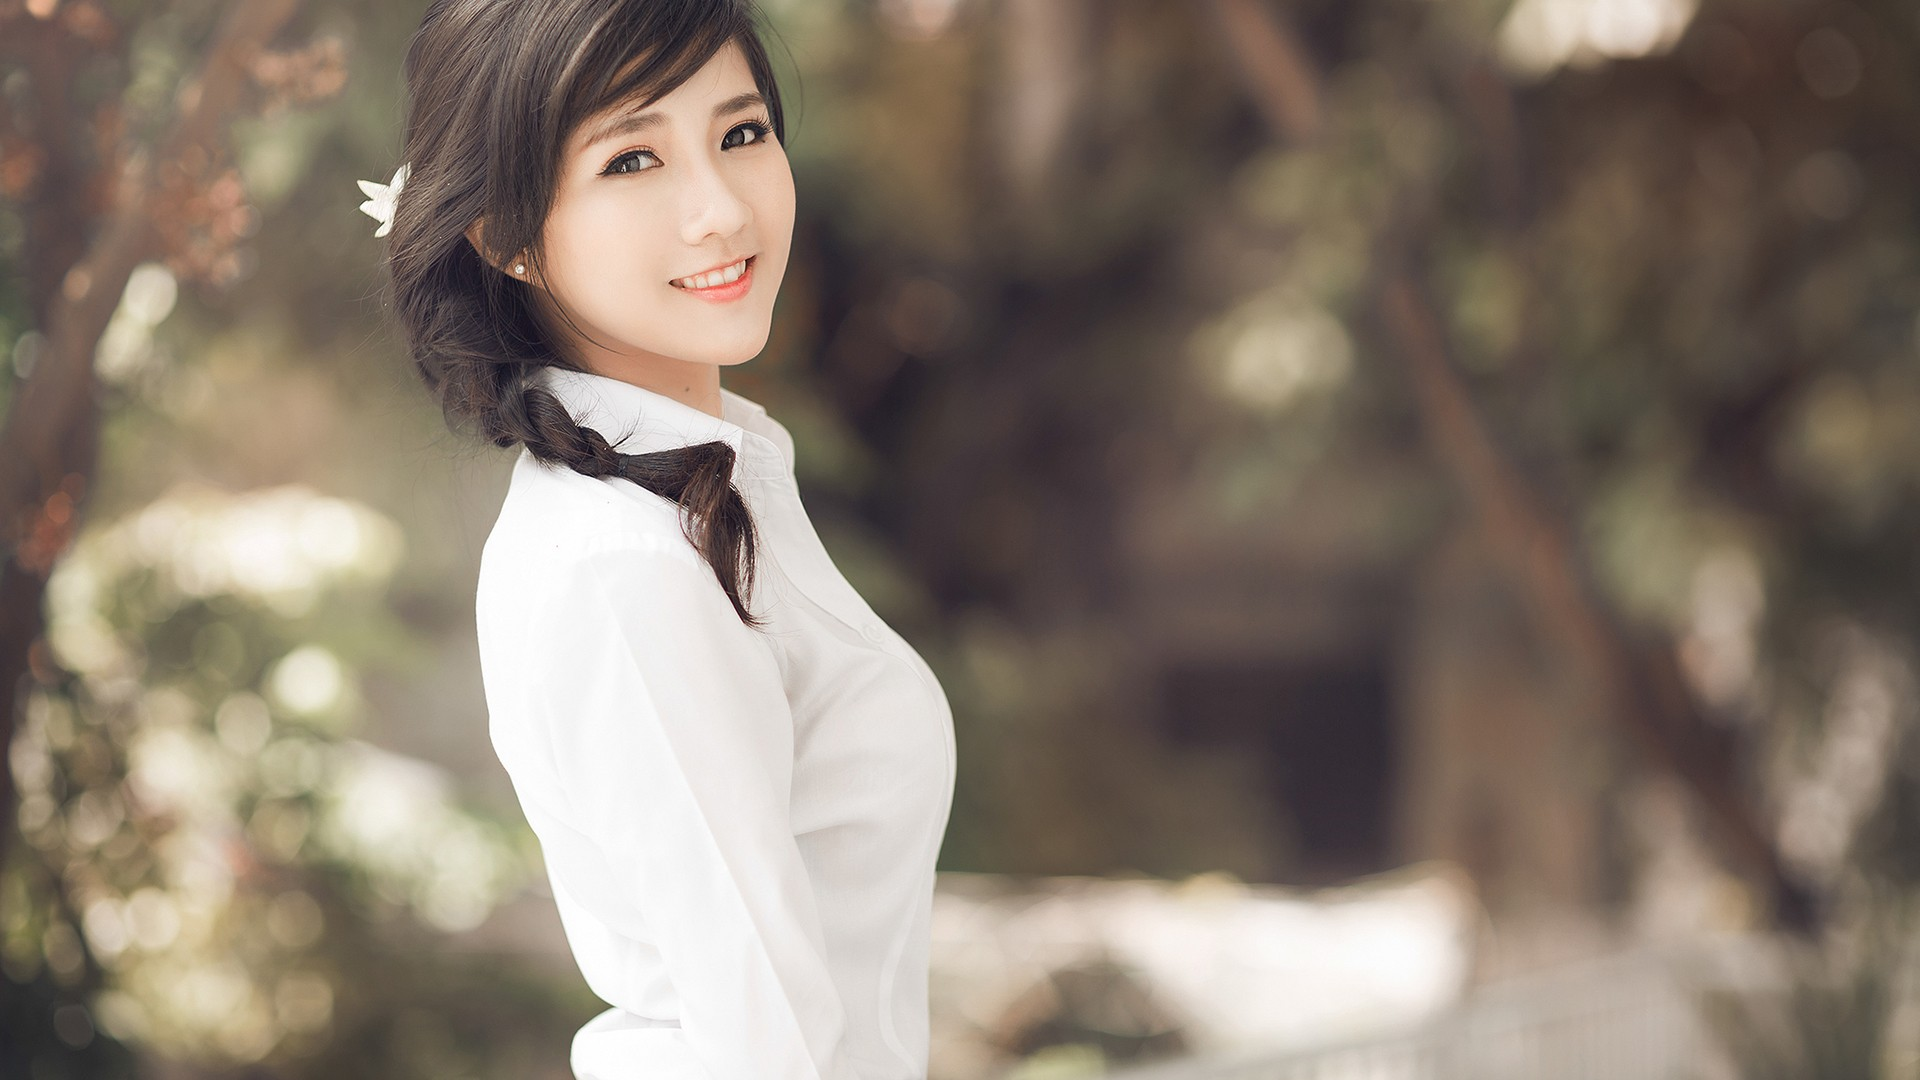 Will last Chinese cute girls images opinion